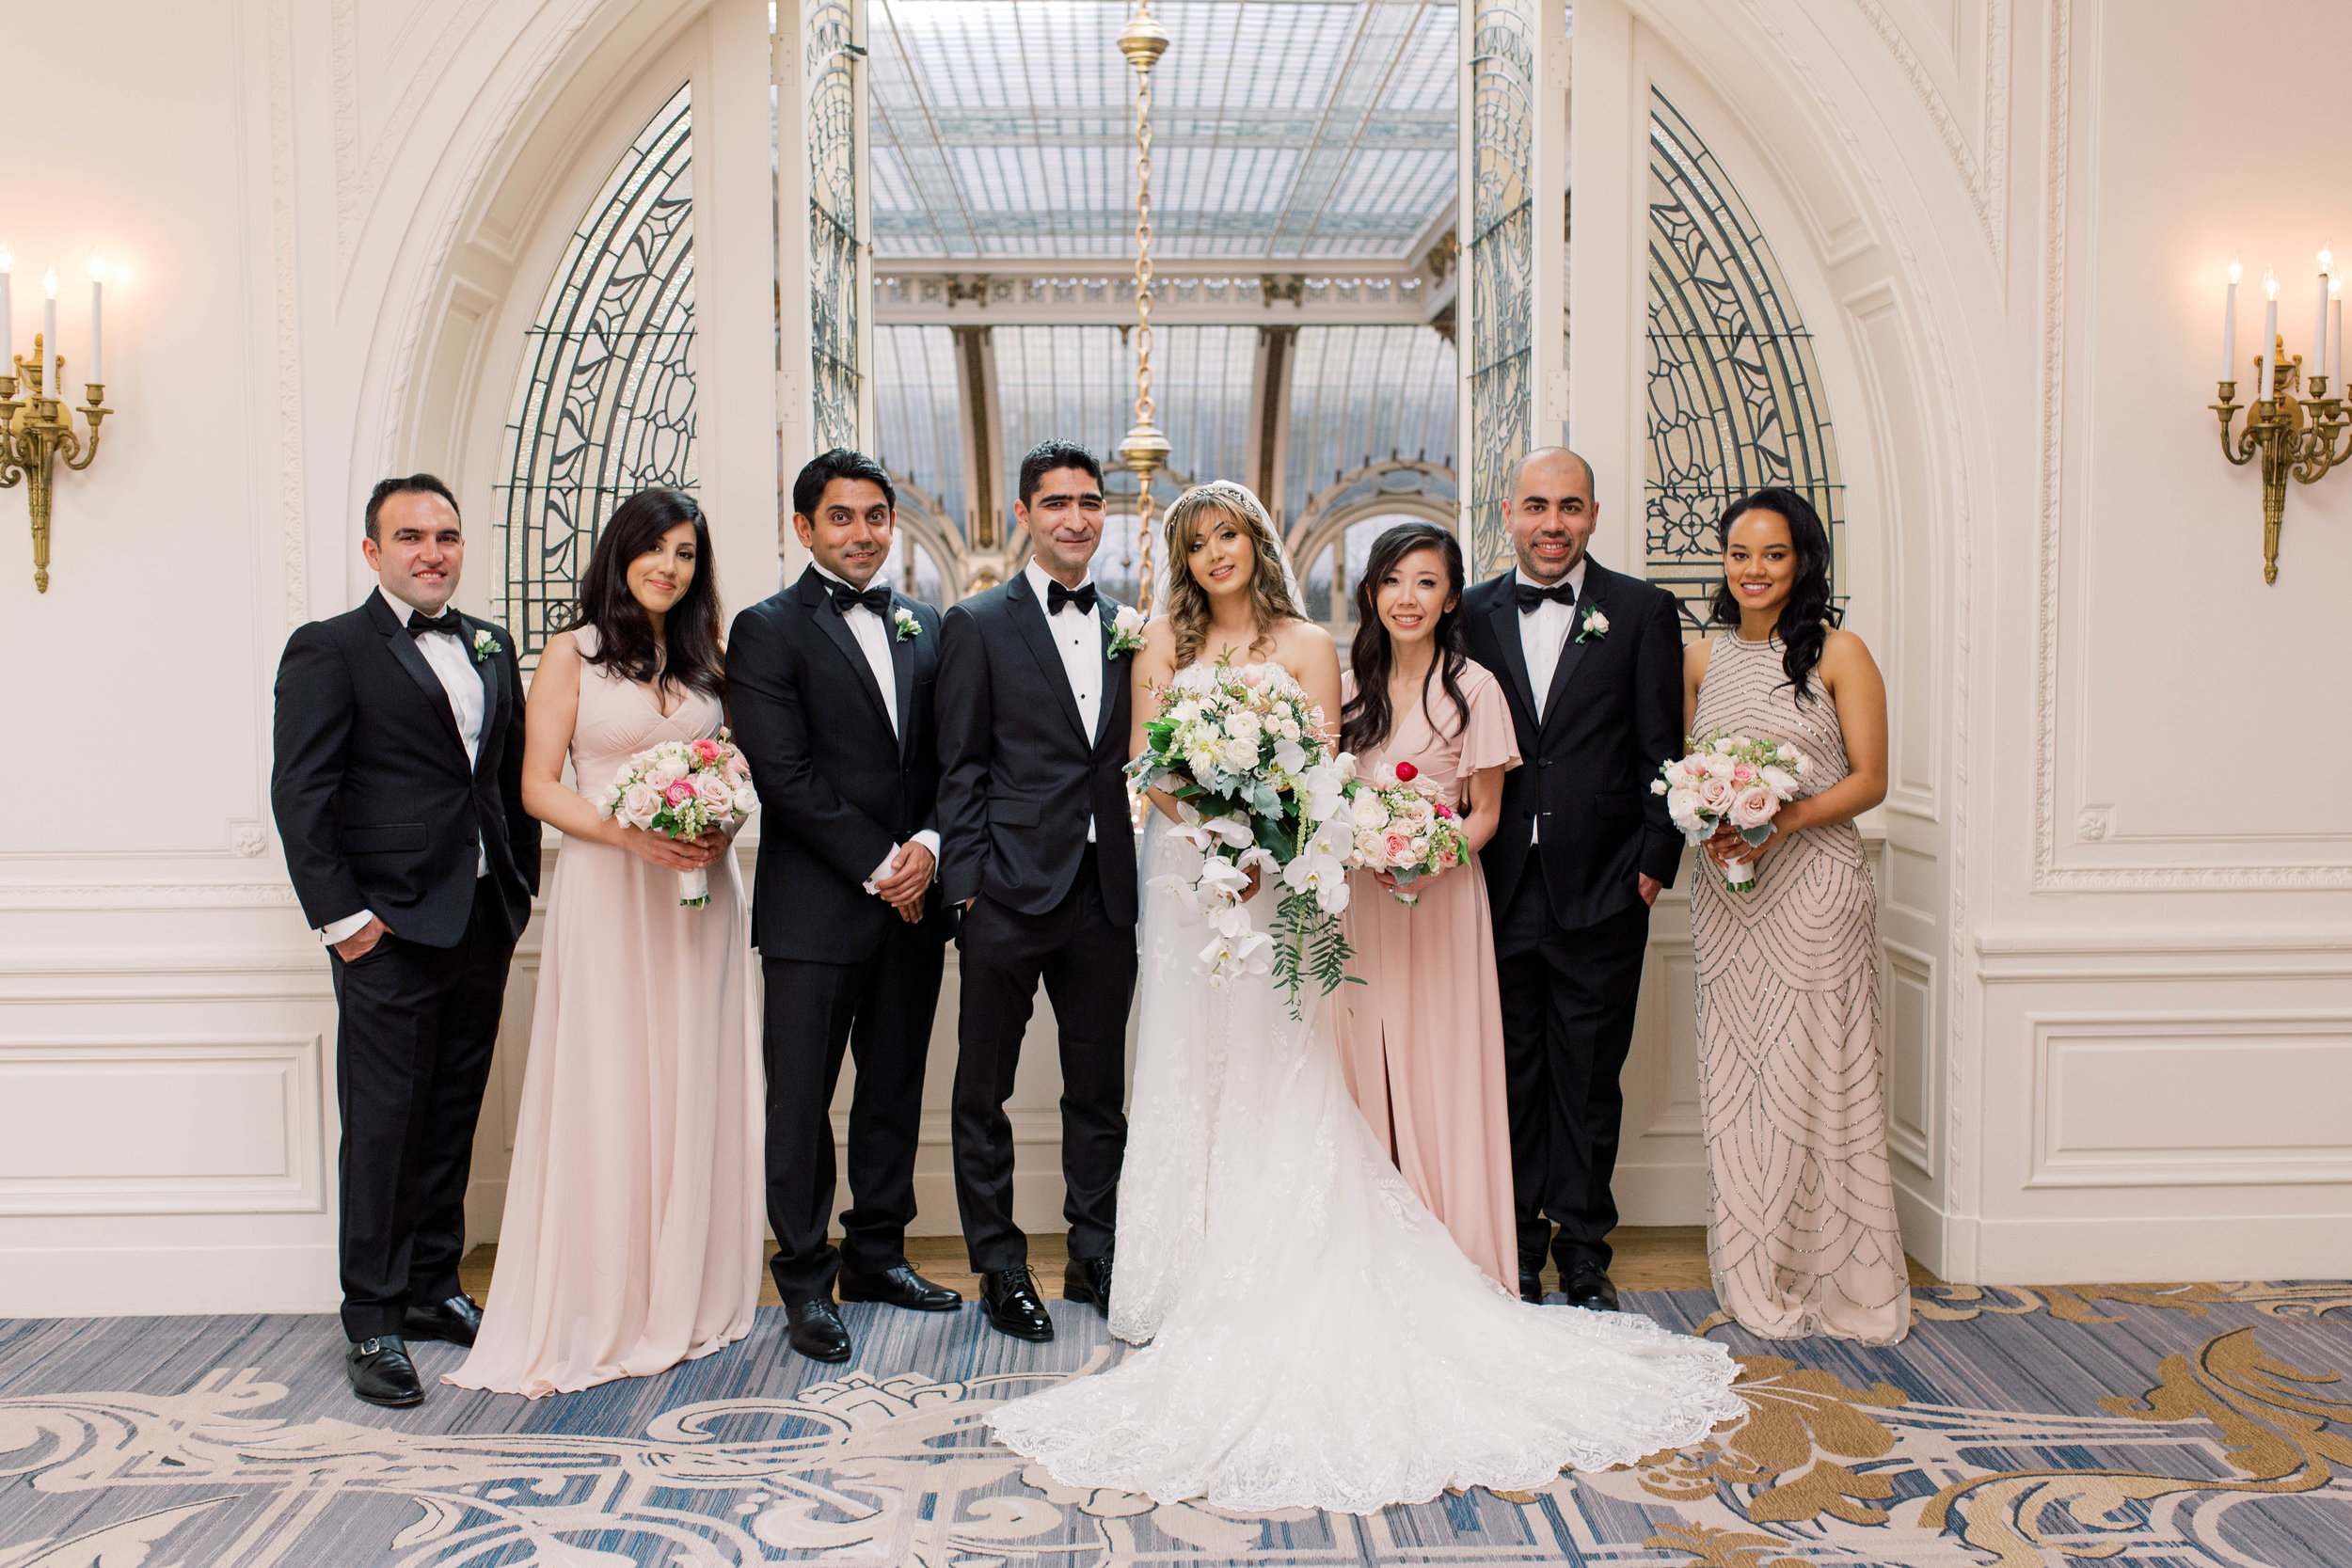 San-Francisco-Palace-Hotel-Wedding-Kristine-Herman-Photography-92.jpg